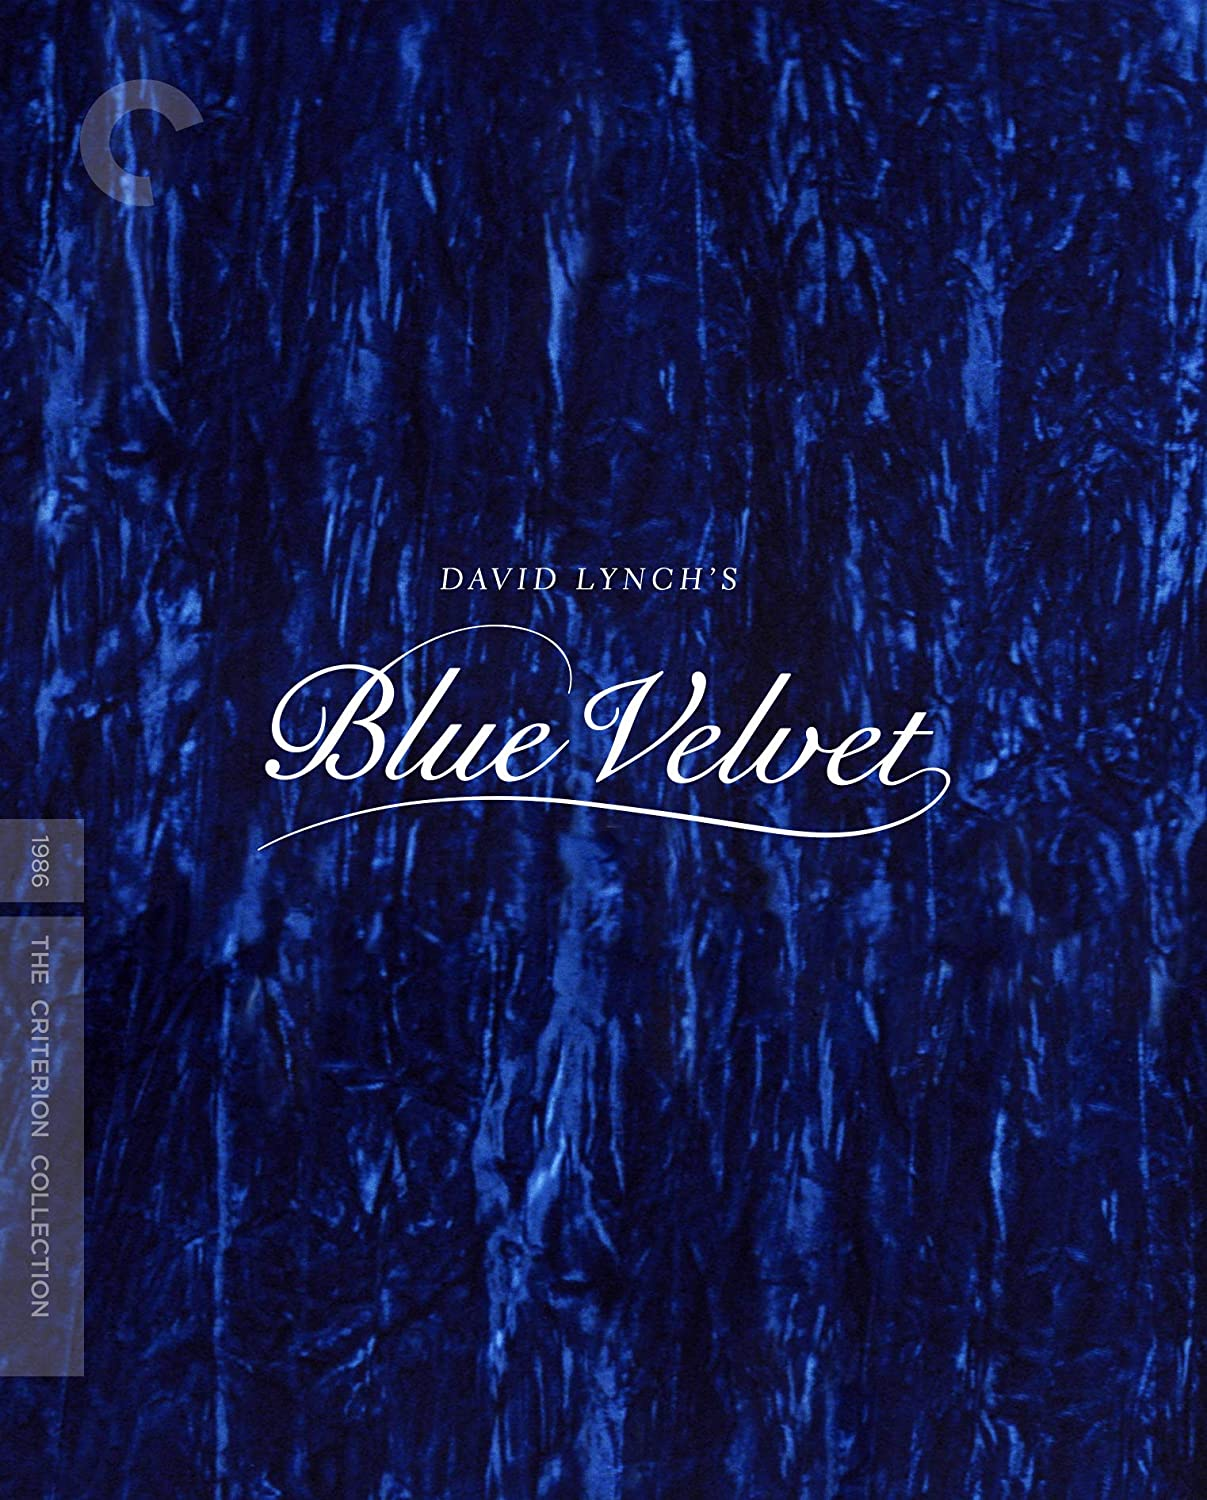 Amazon.com: Blue Velvet (The Criterion Collection) [Blu-ray ...